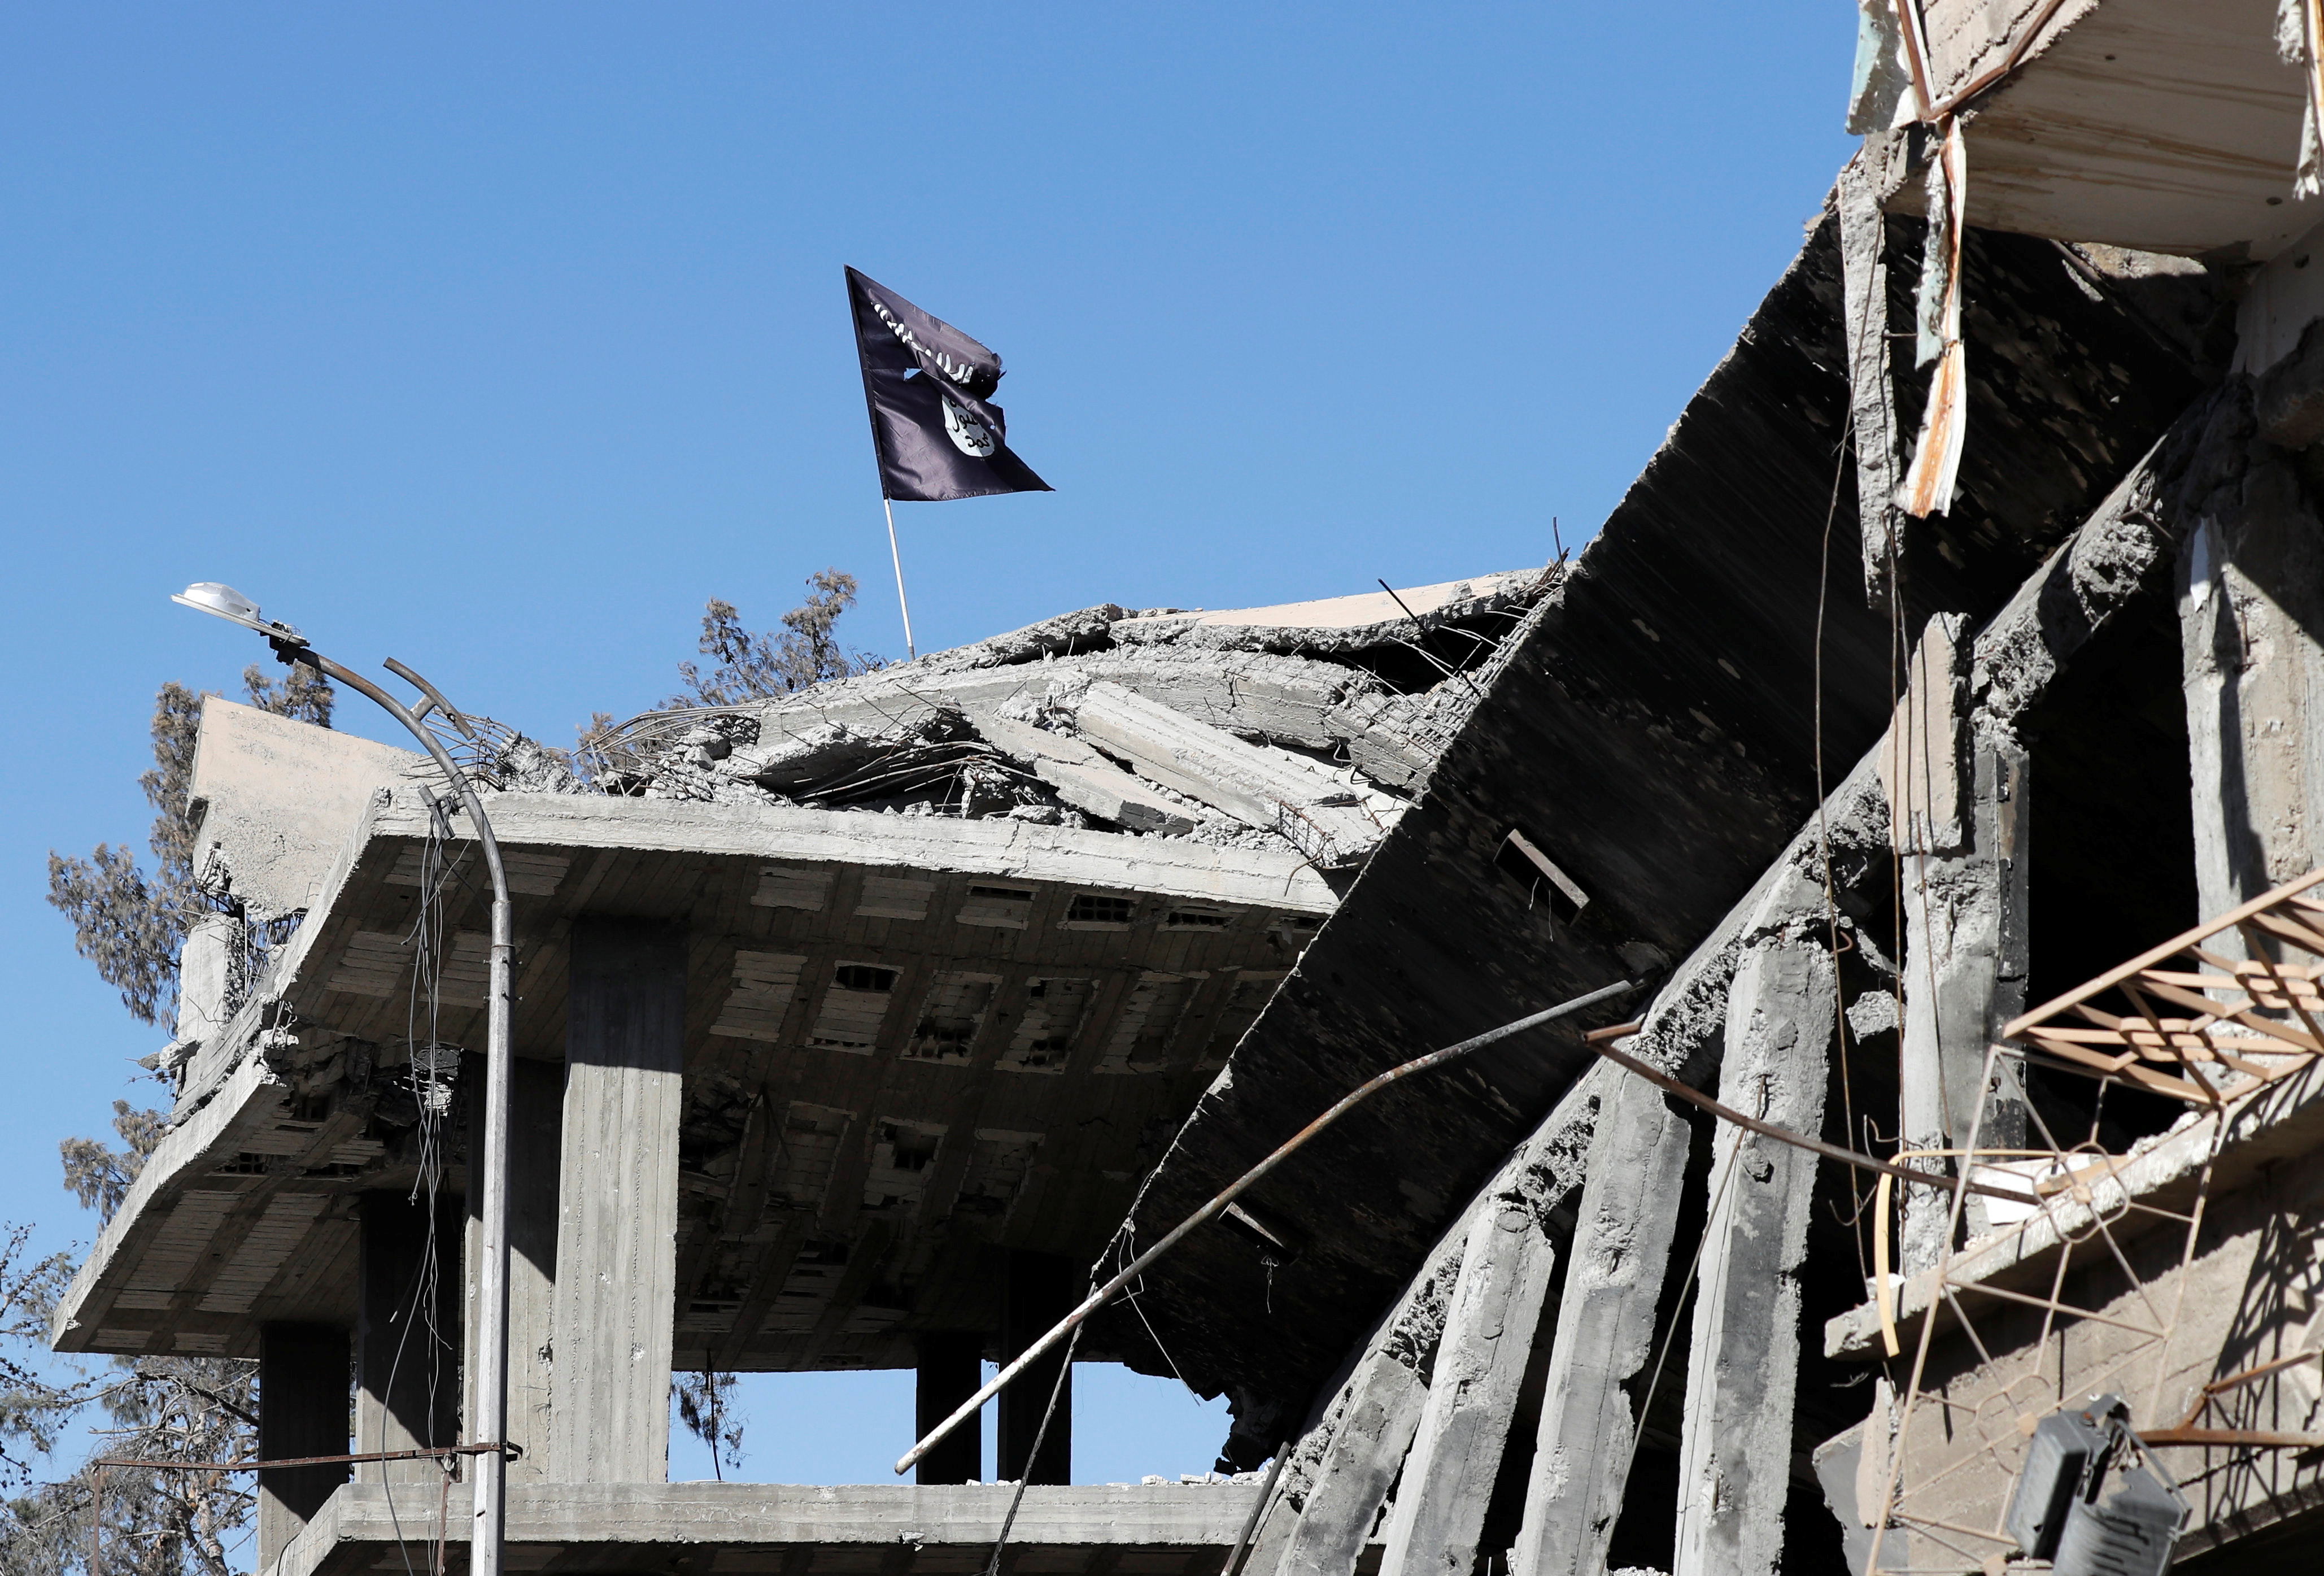 Where will the Islamic State go next?